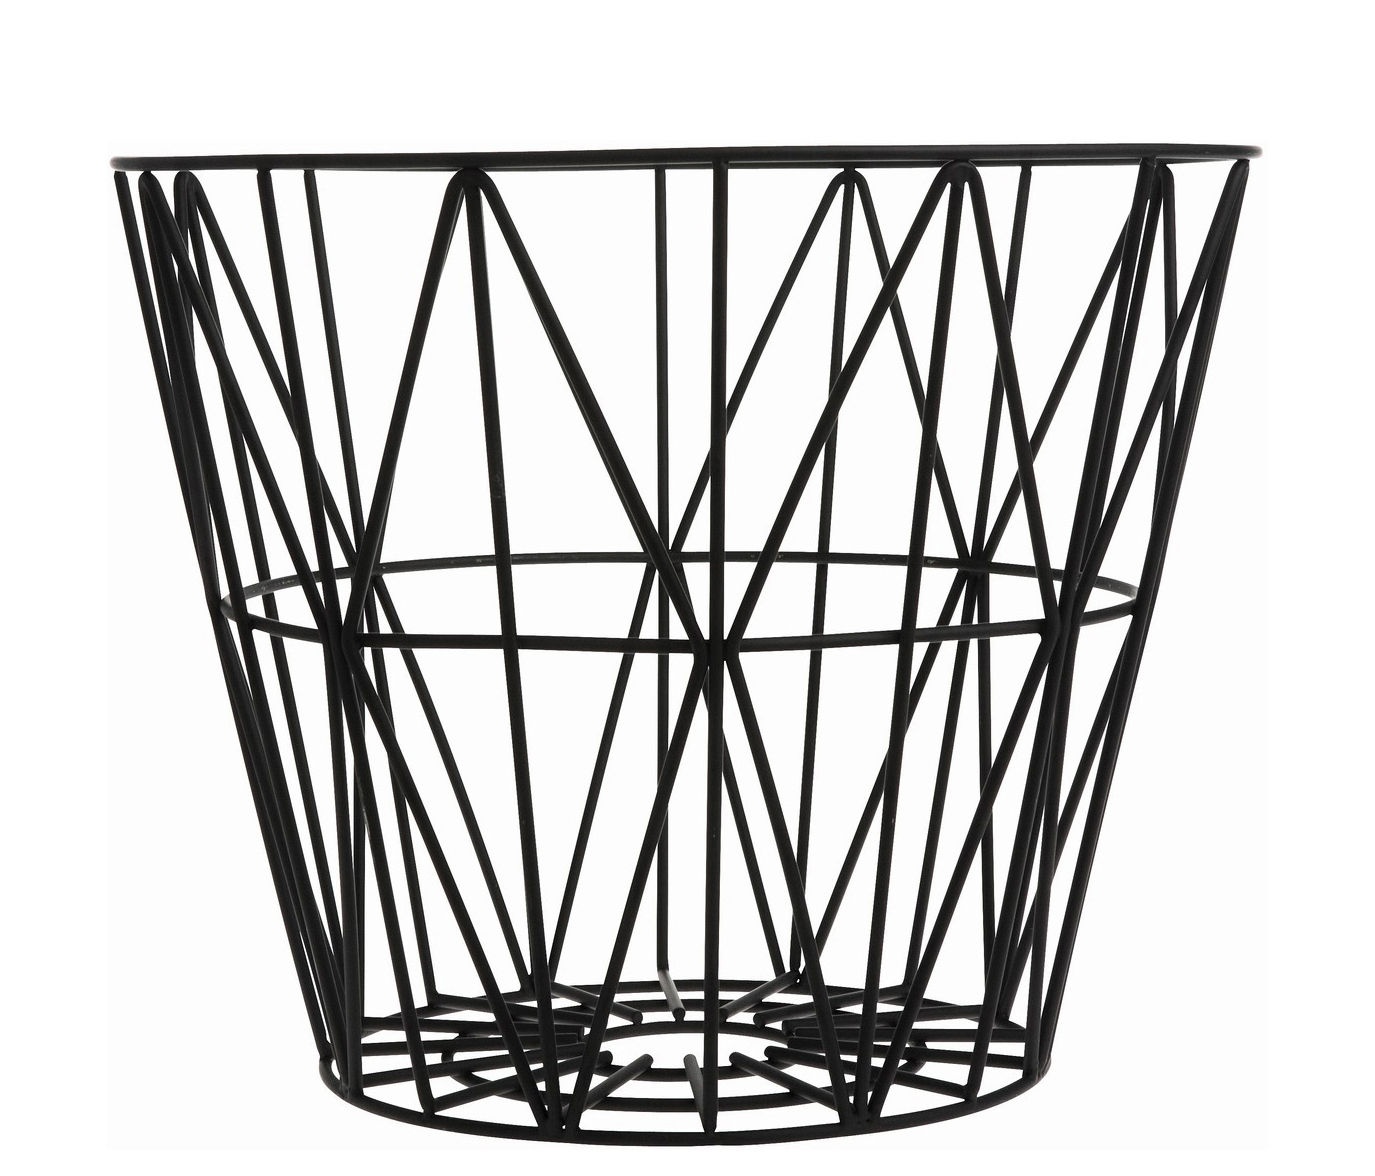 Decoration - For bathroom - Wire Small Basket - Ø 40 x H 35 cm by Ferm Living - Black - Lacquered wire